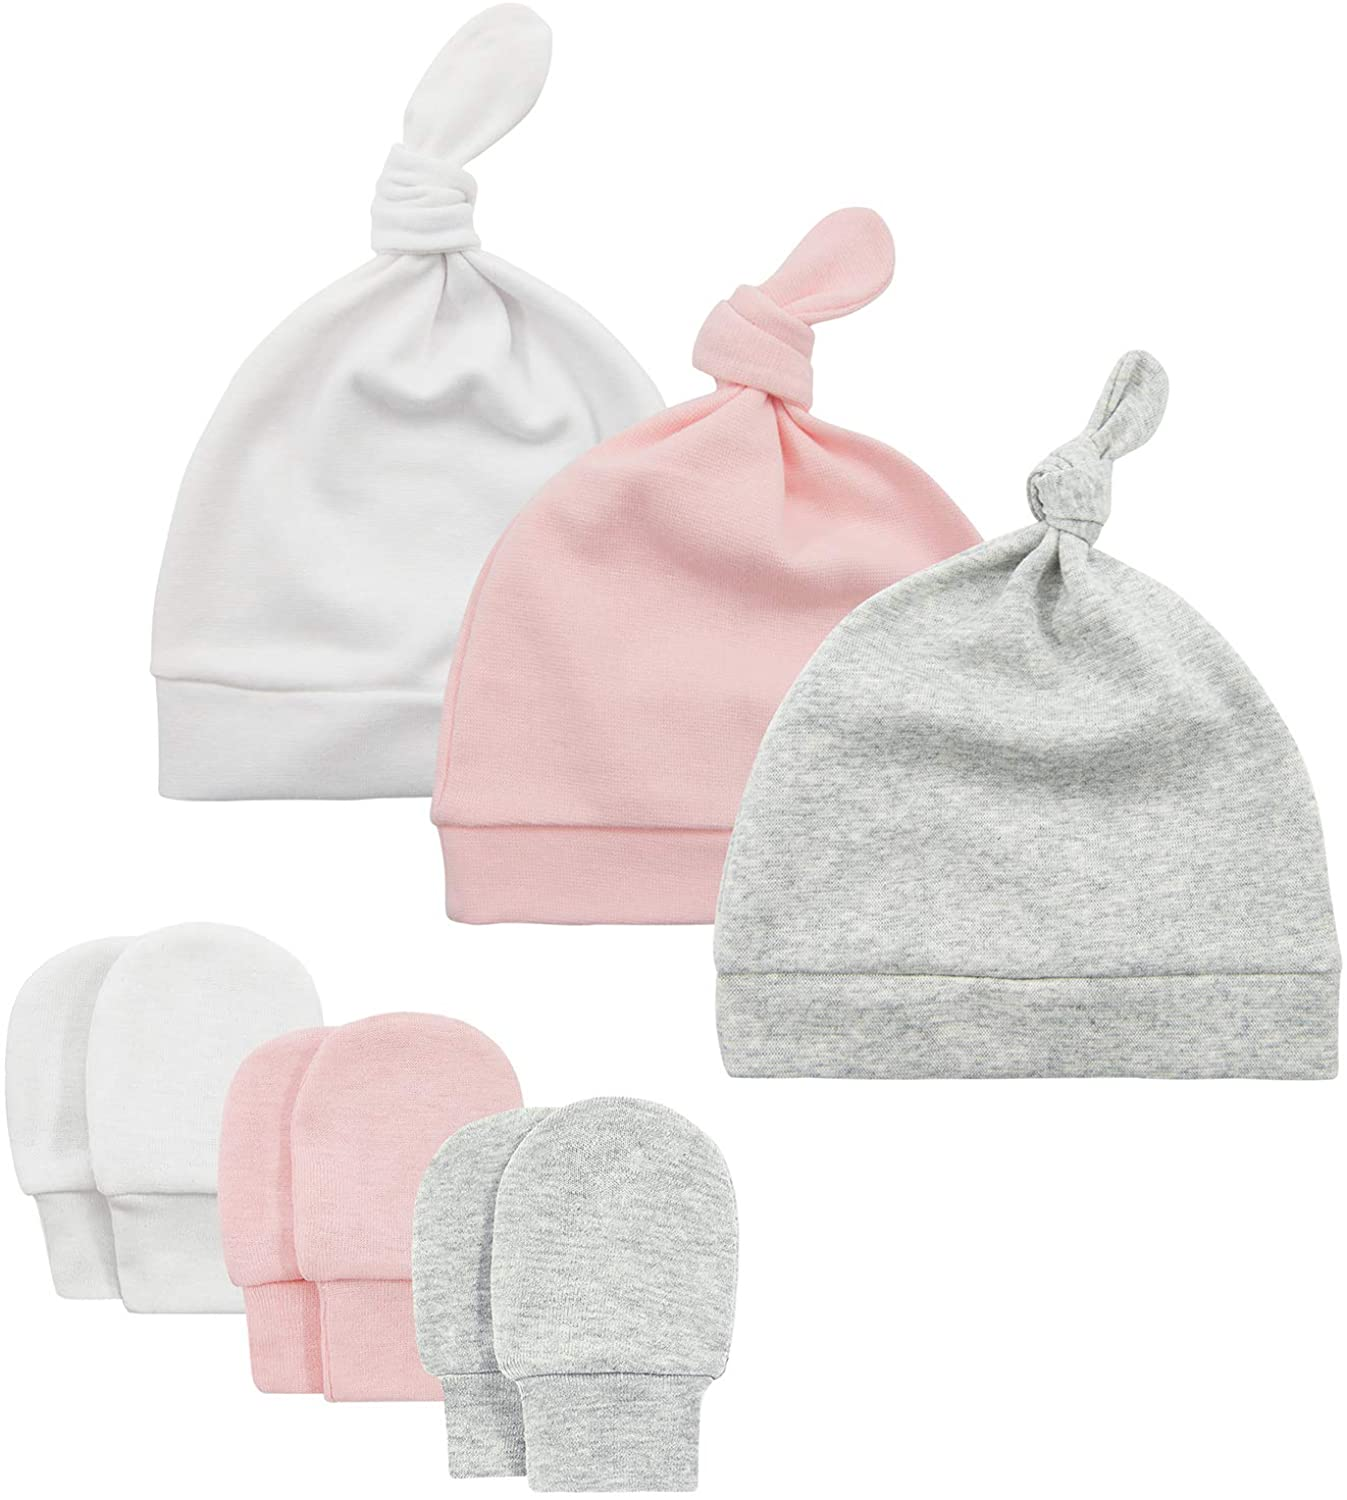 Zando Baby Hats 0-6 Months Newborn Baby Beanie Cute Soft Knotted Fall Winter Caps for Baby Boy Girl